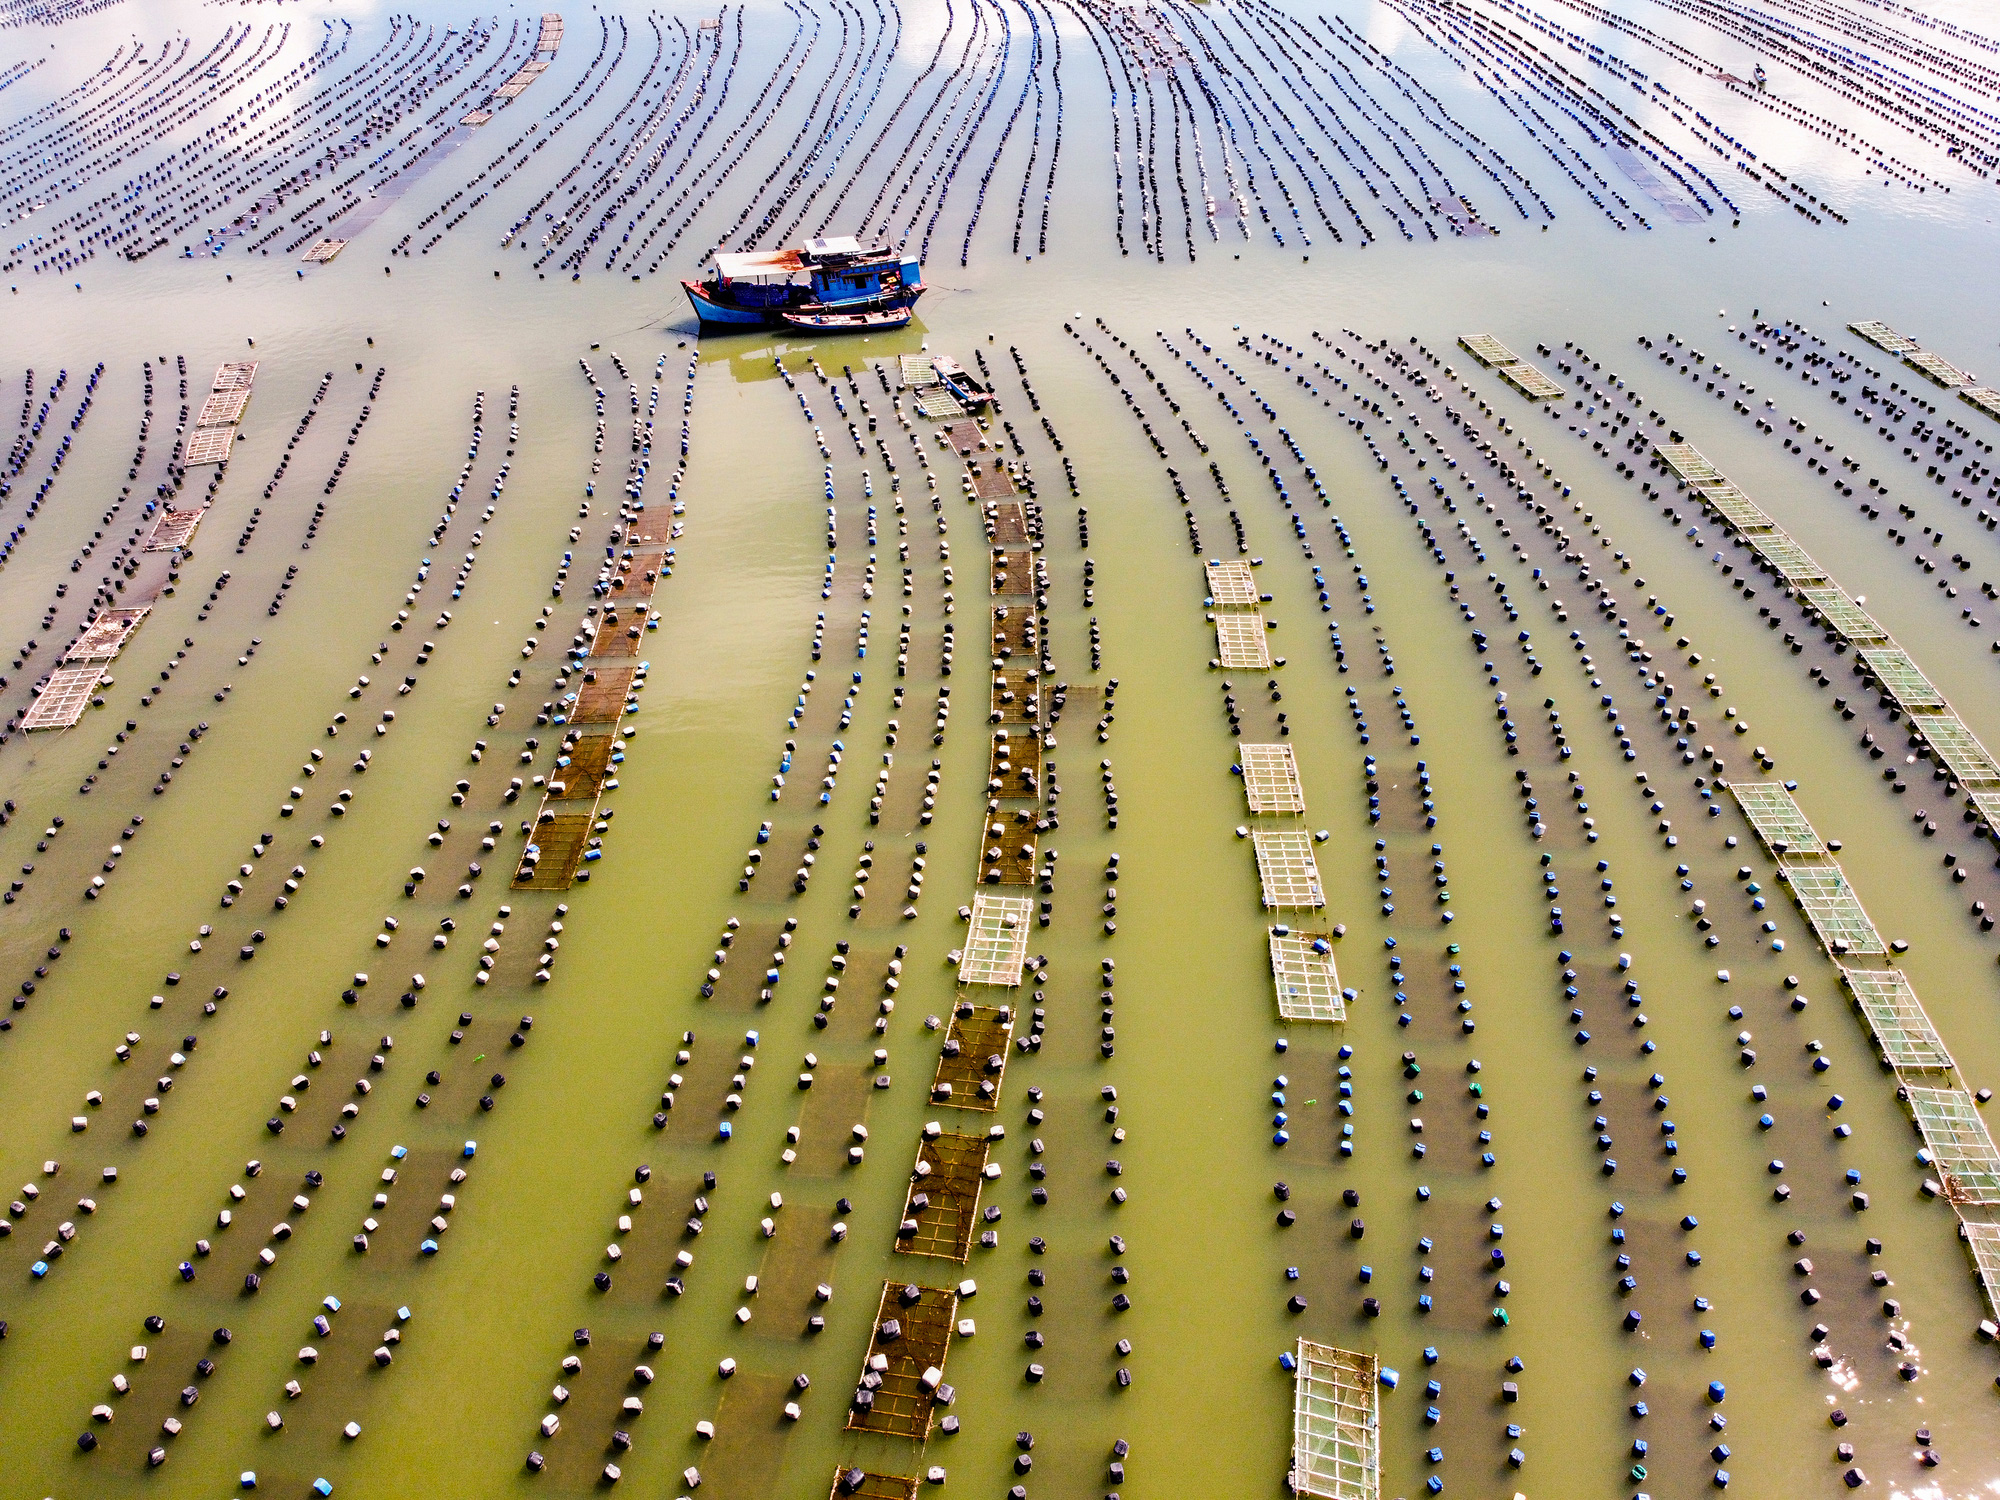 Oyster farming rafts in Can Gio District, Ho Chi Minh City are seen in a photo by Bui Van Nghiep, which won second prize at a local photo contest.